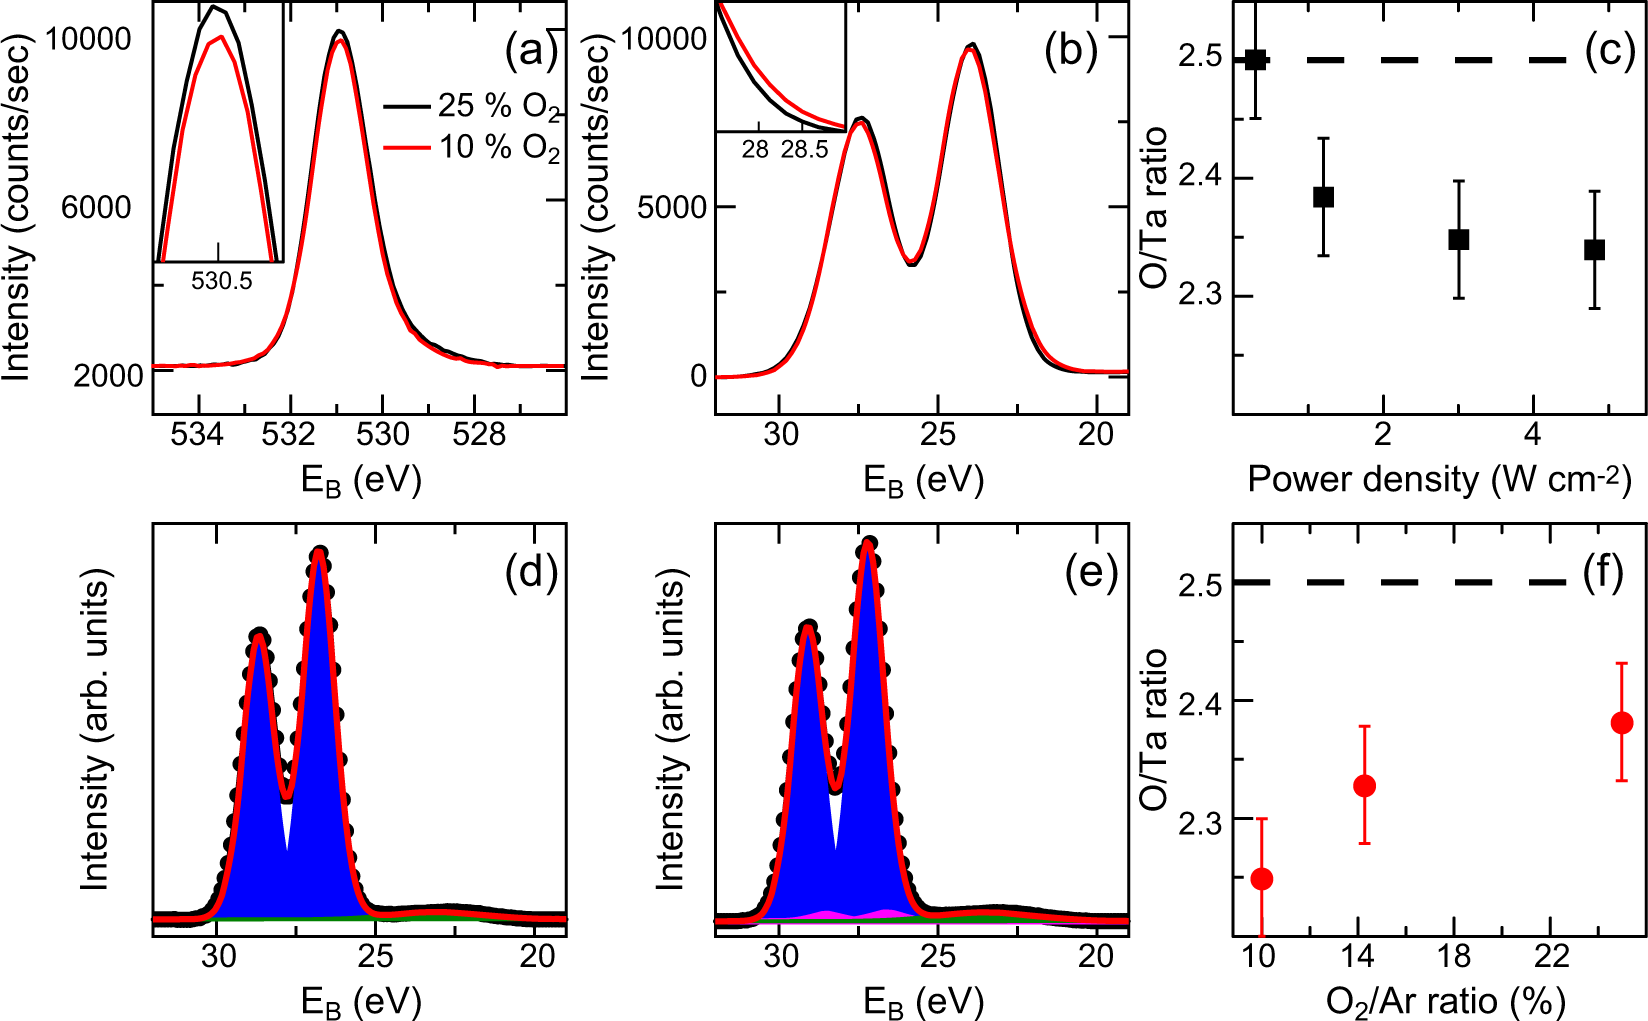 Reduction of the forming voltage through tailored oxygen non